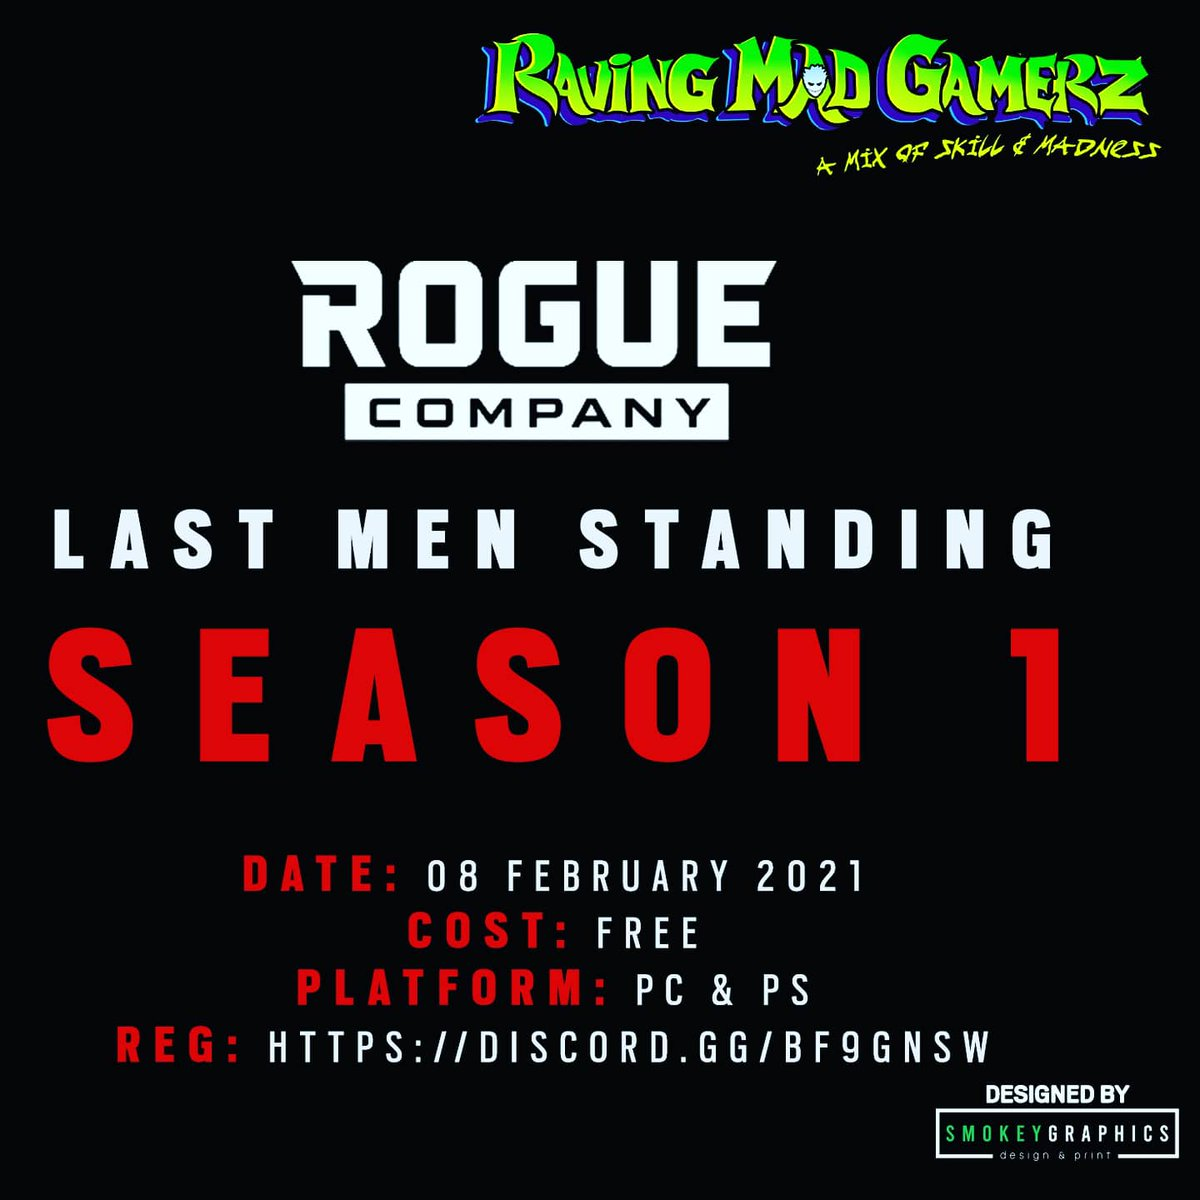 Introducing our Rogue Company League for 2021 Join up using our discord:   How to register:   Designed by @SmokeyGraphics    #beravingmadaboutgaming #lastmenstanding